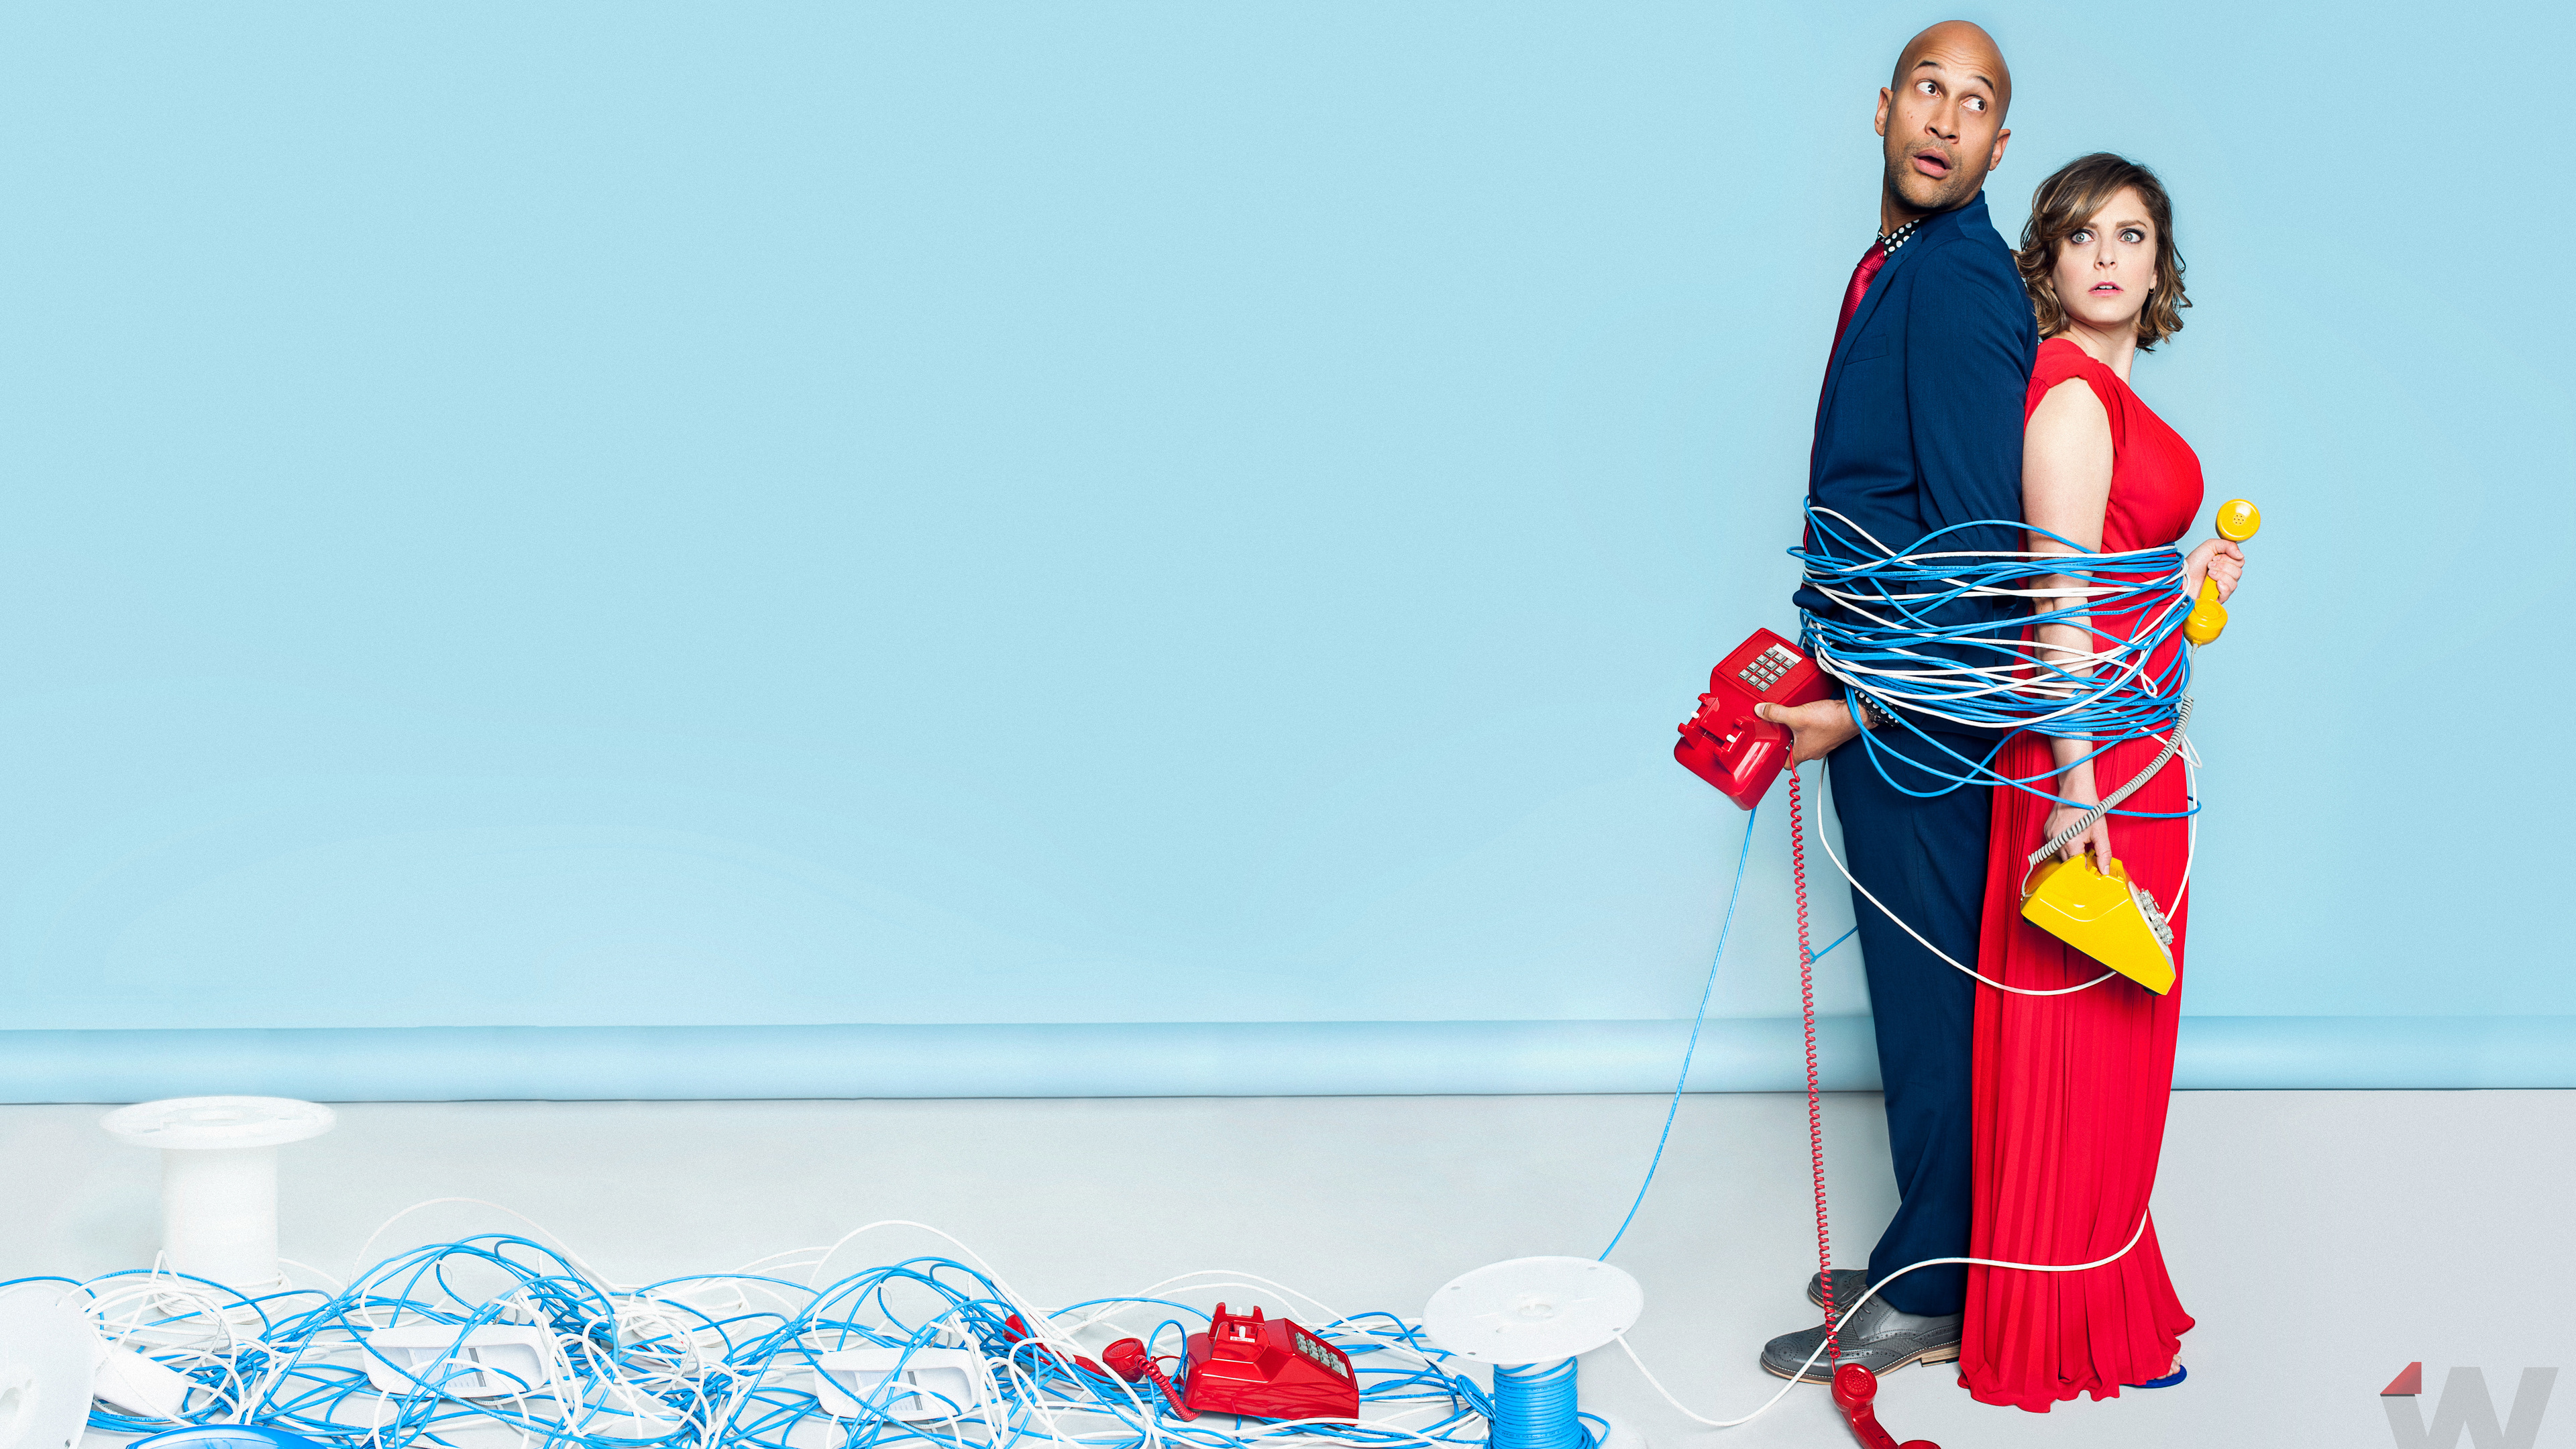 keegan michael key and rachel bloom 1536947353 - Keegan Michael Key And Rachel Bloom - rachel bloom wallpapers, male celebrities wallpapers, keegan michael key wallpapers, hd-wallpapers, celebrities wallpapers, 5k wallpapers, 4k-wallpapers